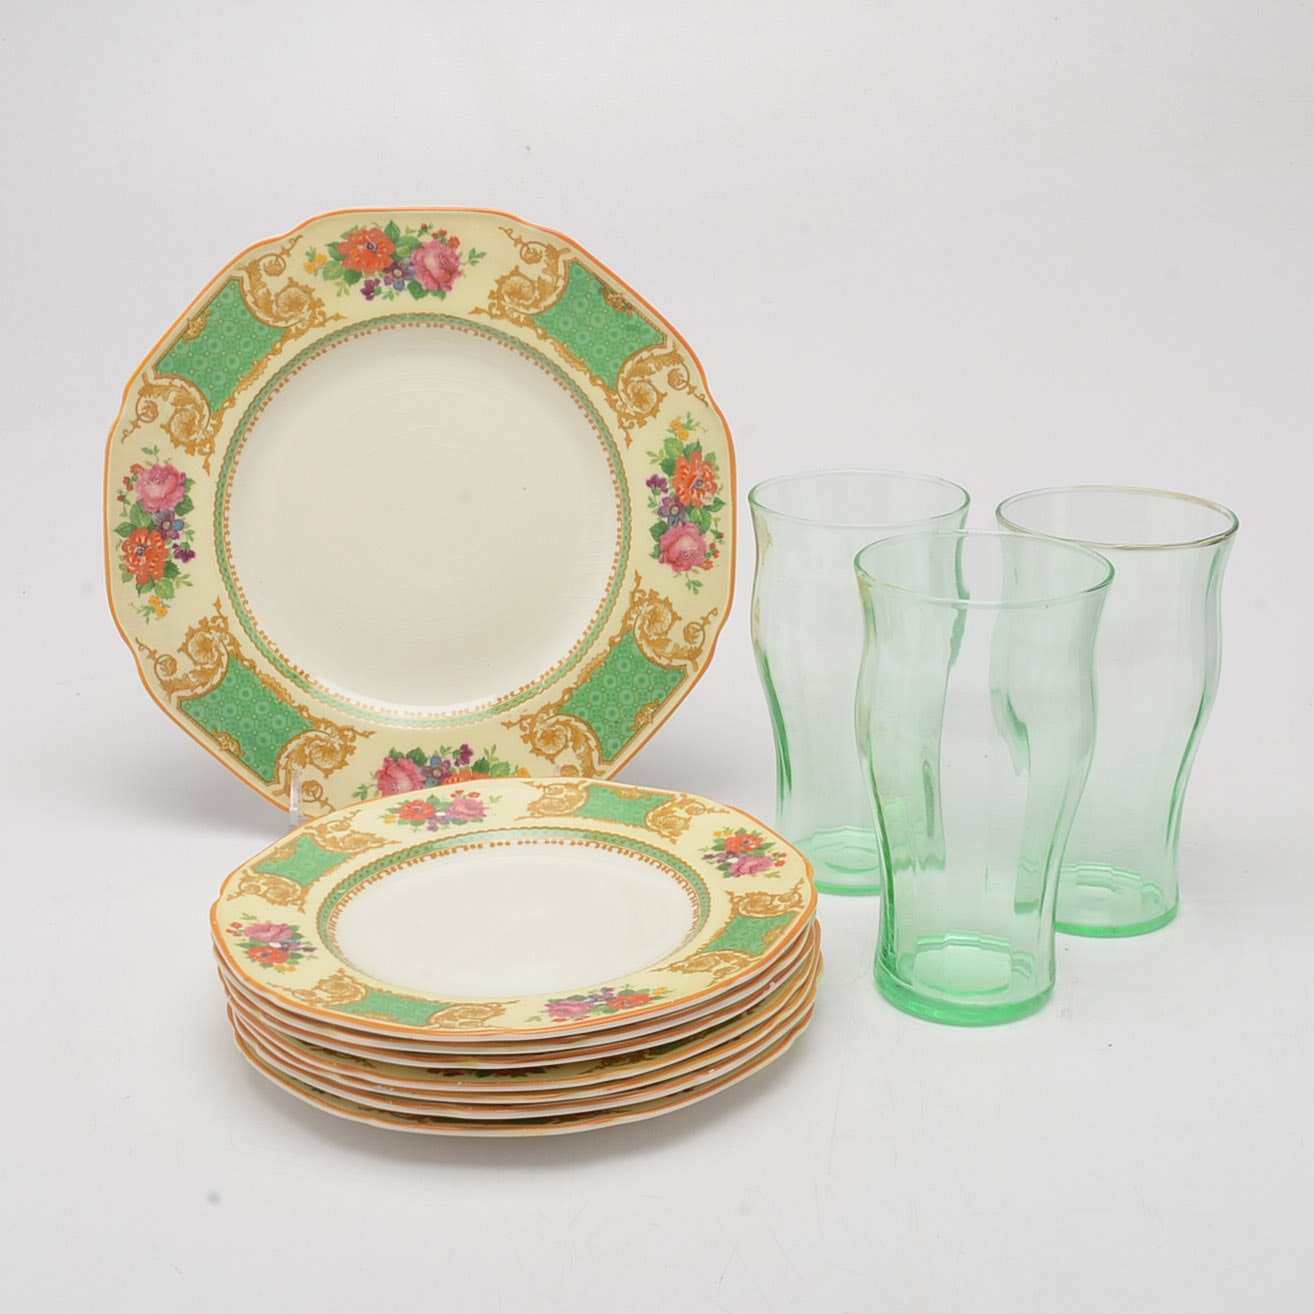 Crown Ducal Ware Plates and Vintage Glasses